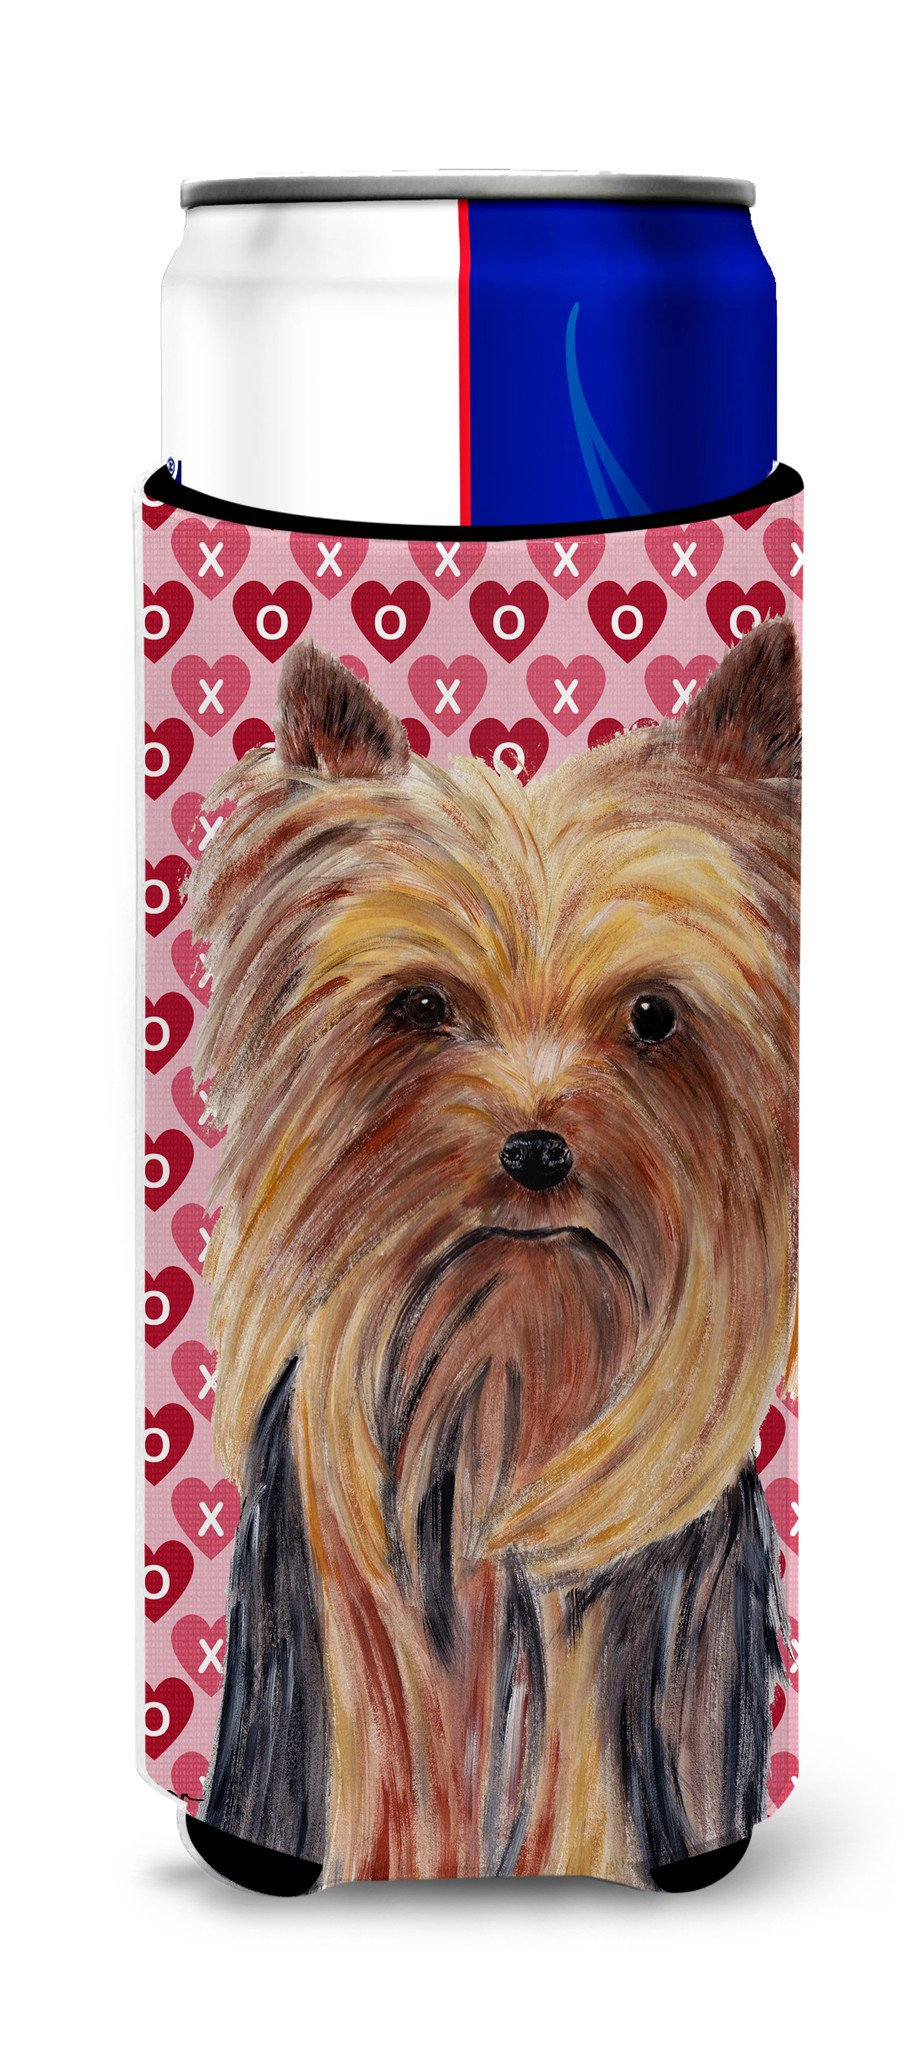 Yorkie Hearts Love and Valentine's Day Portrait Ultra Beverage Insulators for slim cans SC9274MUK by Caroline's Treasures